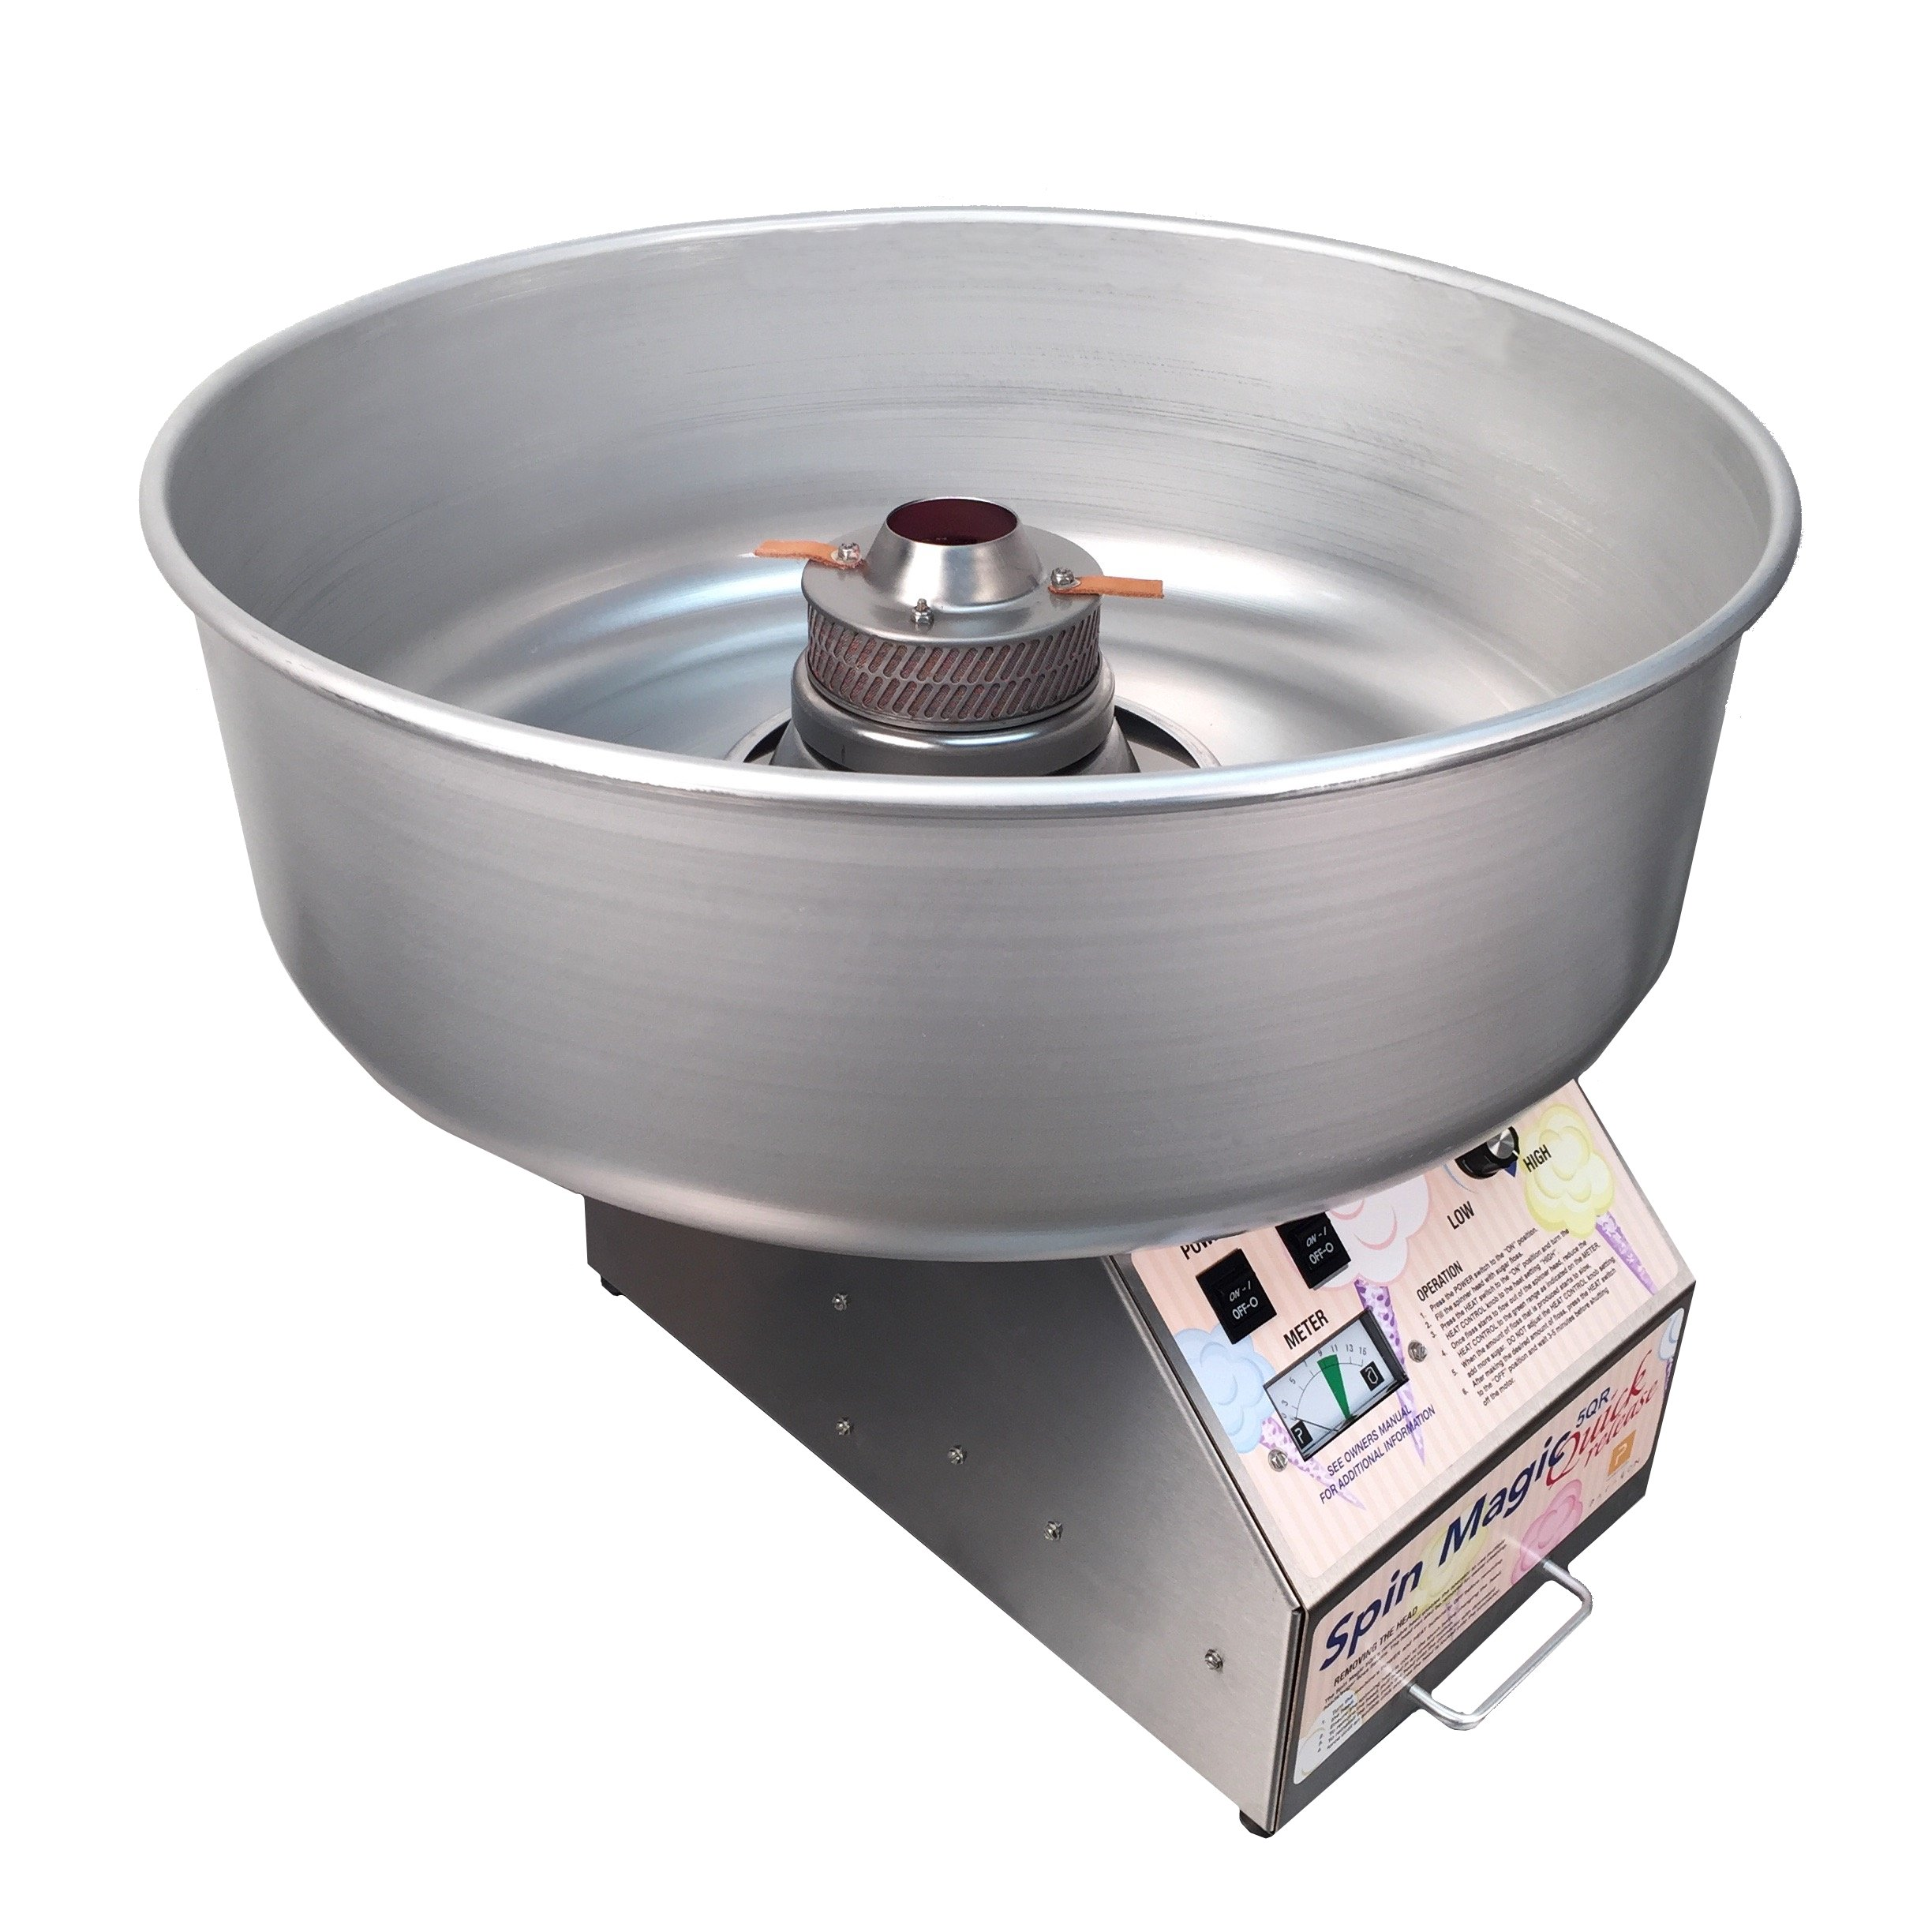 Paragon Spin Magic 5 Quick Release Head Cotton Candy Machine with Metal Bowl for Professional Concessionaires Requiring Commercial Quality & Construction by Paragon - Manufactured Fun